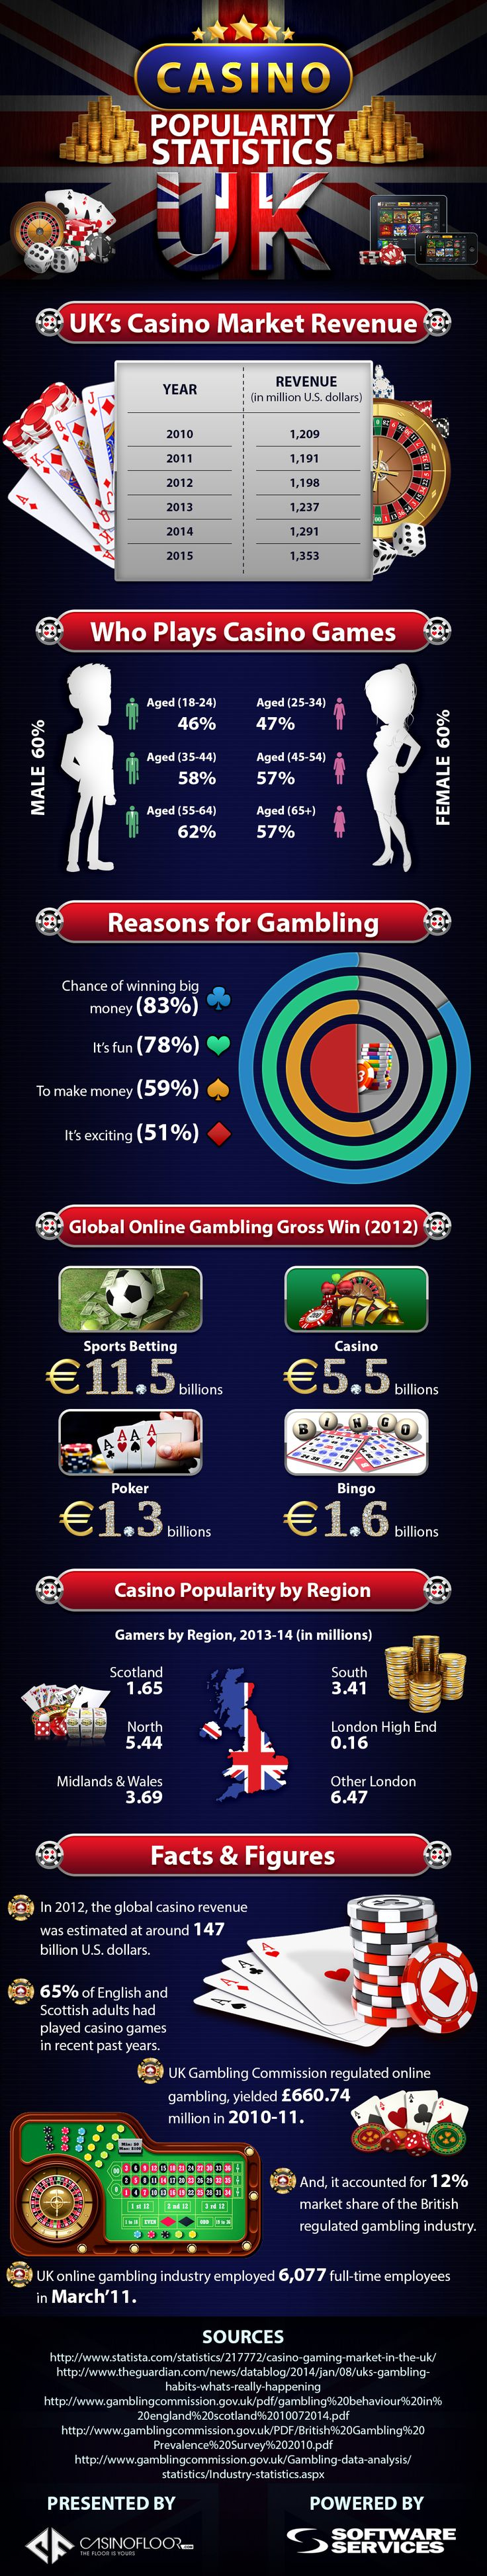 Best casino gambling online statistics usage gambling as an emerging health problem on campus